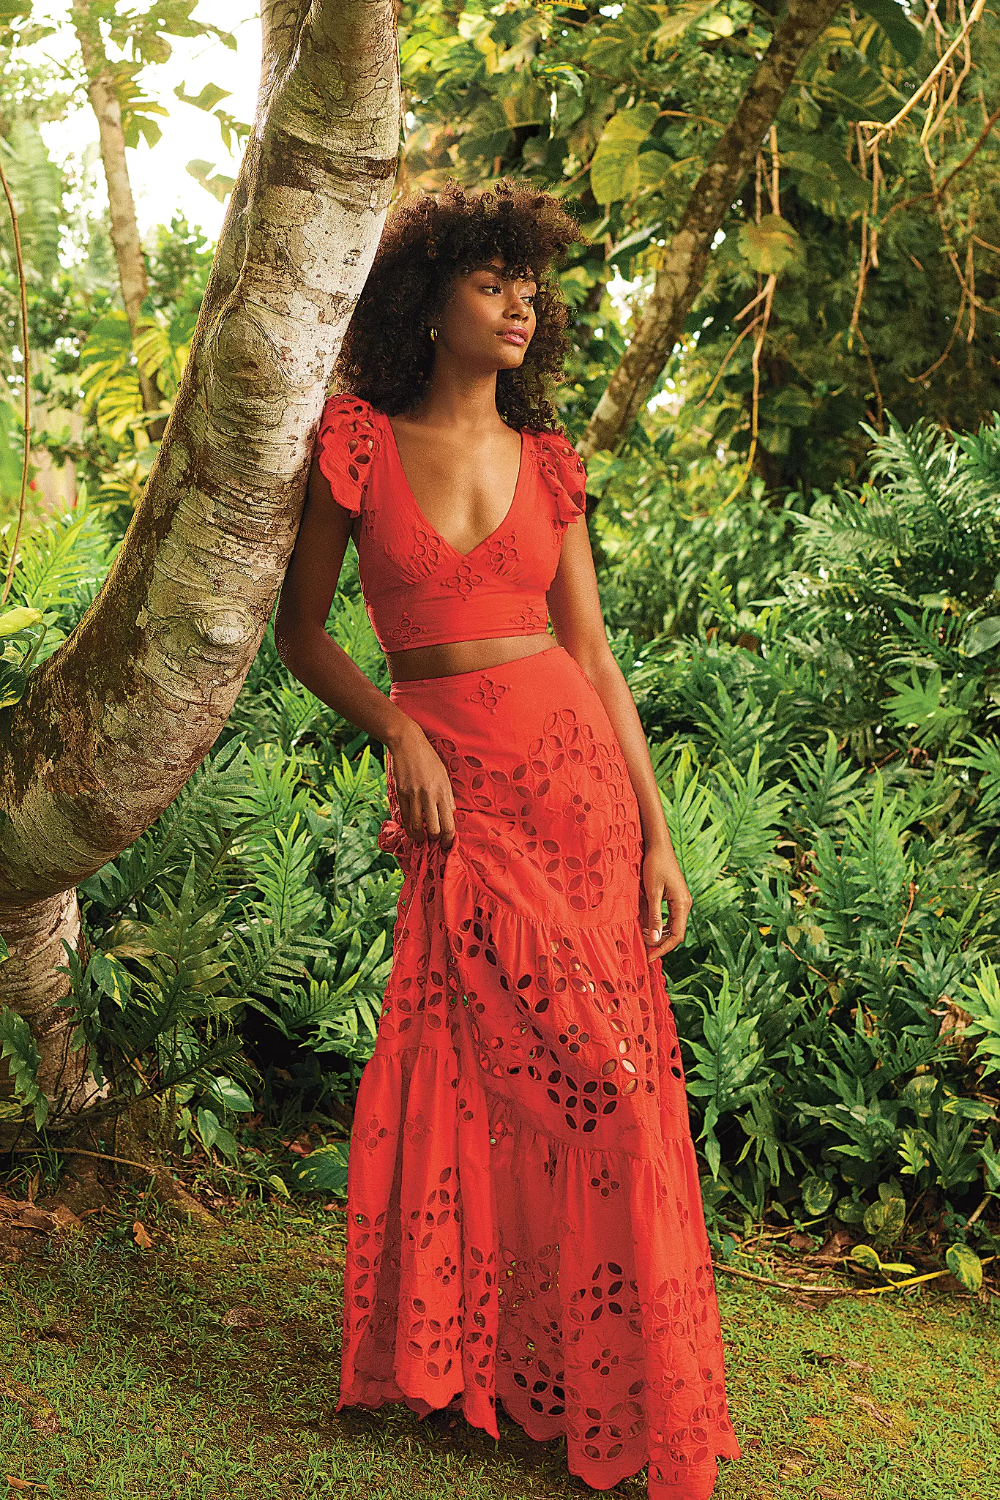 FP One Dolce Vita Set in 2020 Tropical skirt, High rise